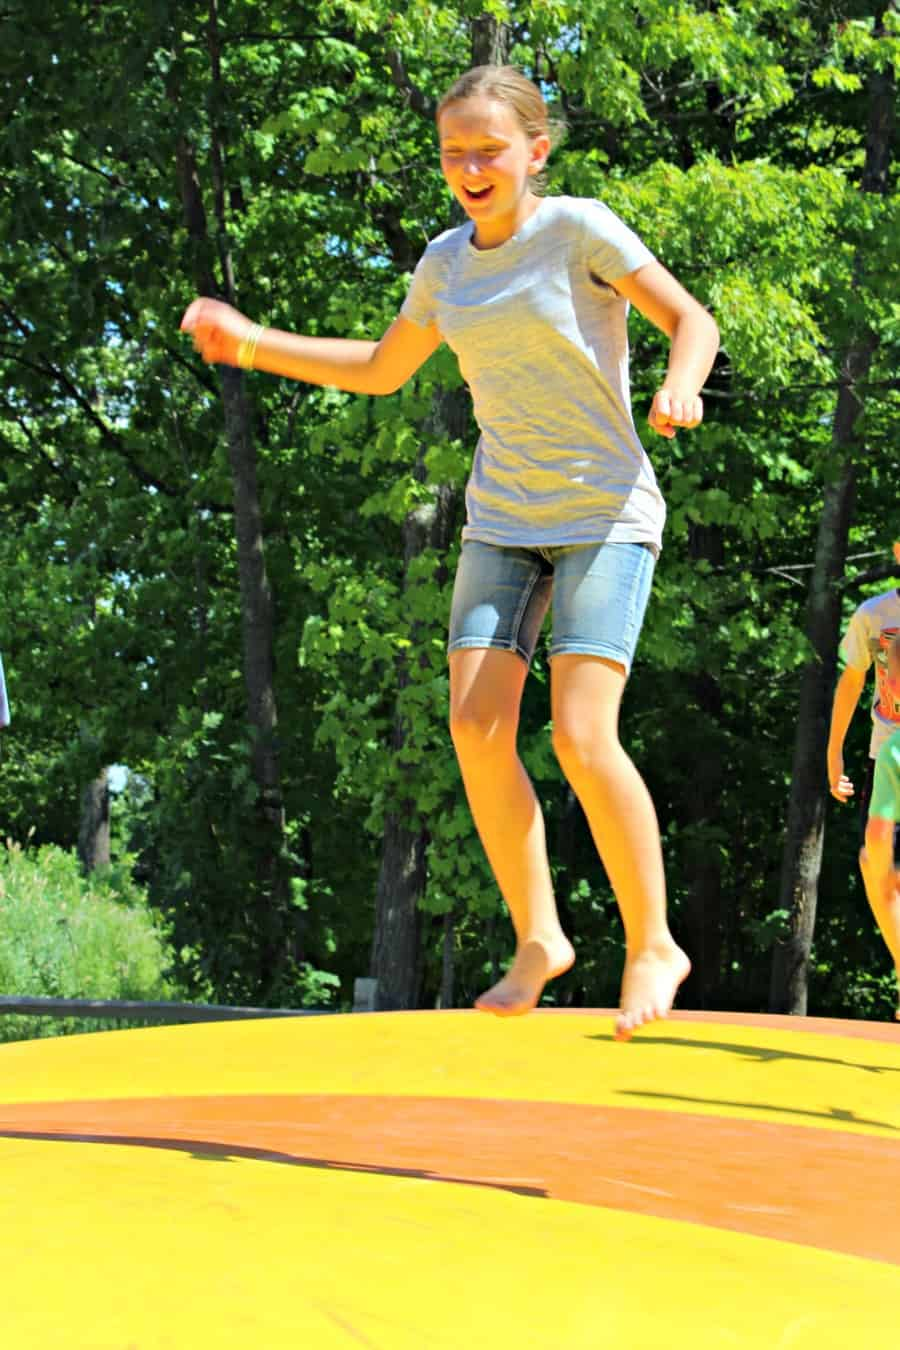 Family Friendly Attractions In Duluth MN - Spirit Mountain Adventure Park